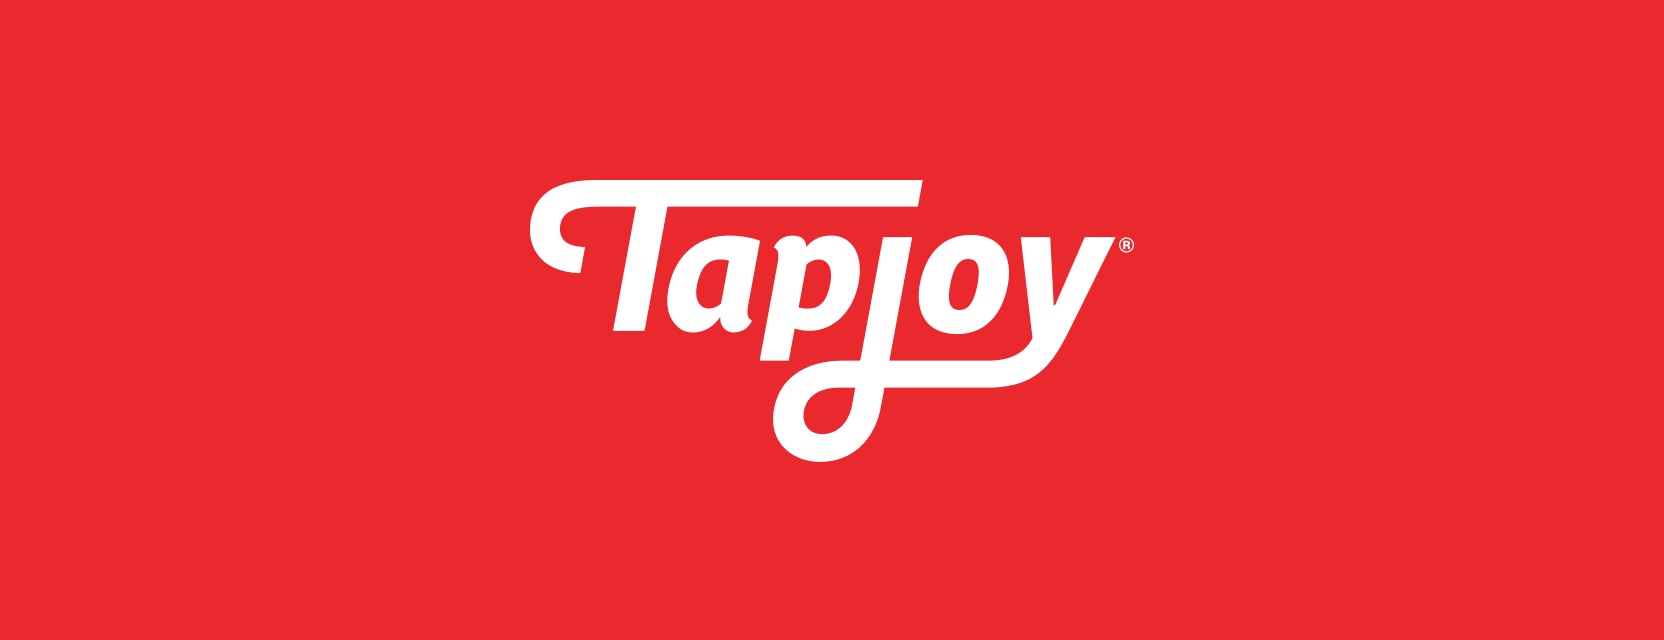 Tapjoy Achieves 10X Performance Gains in Move to SingleStore